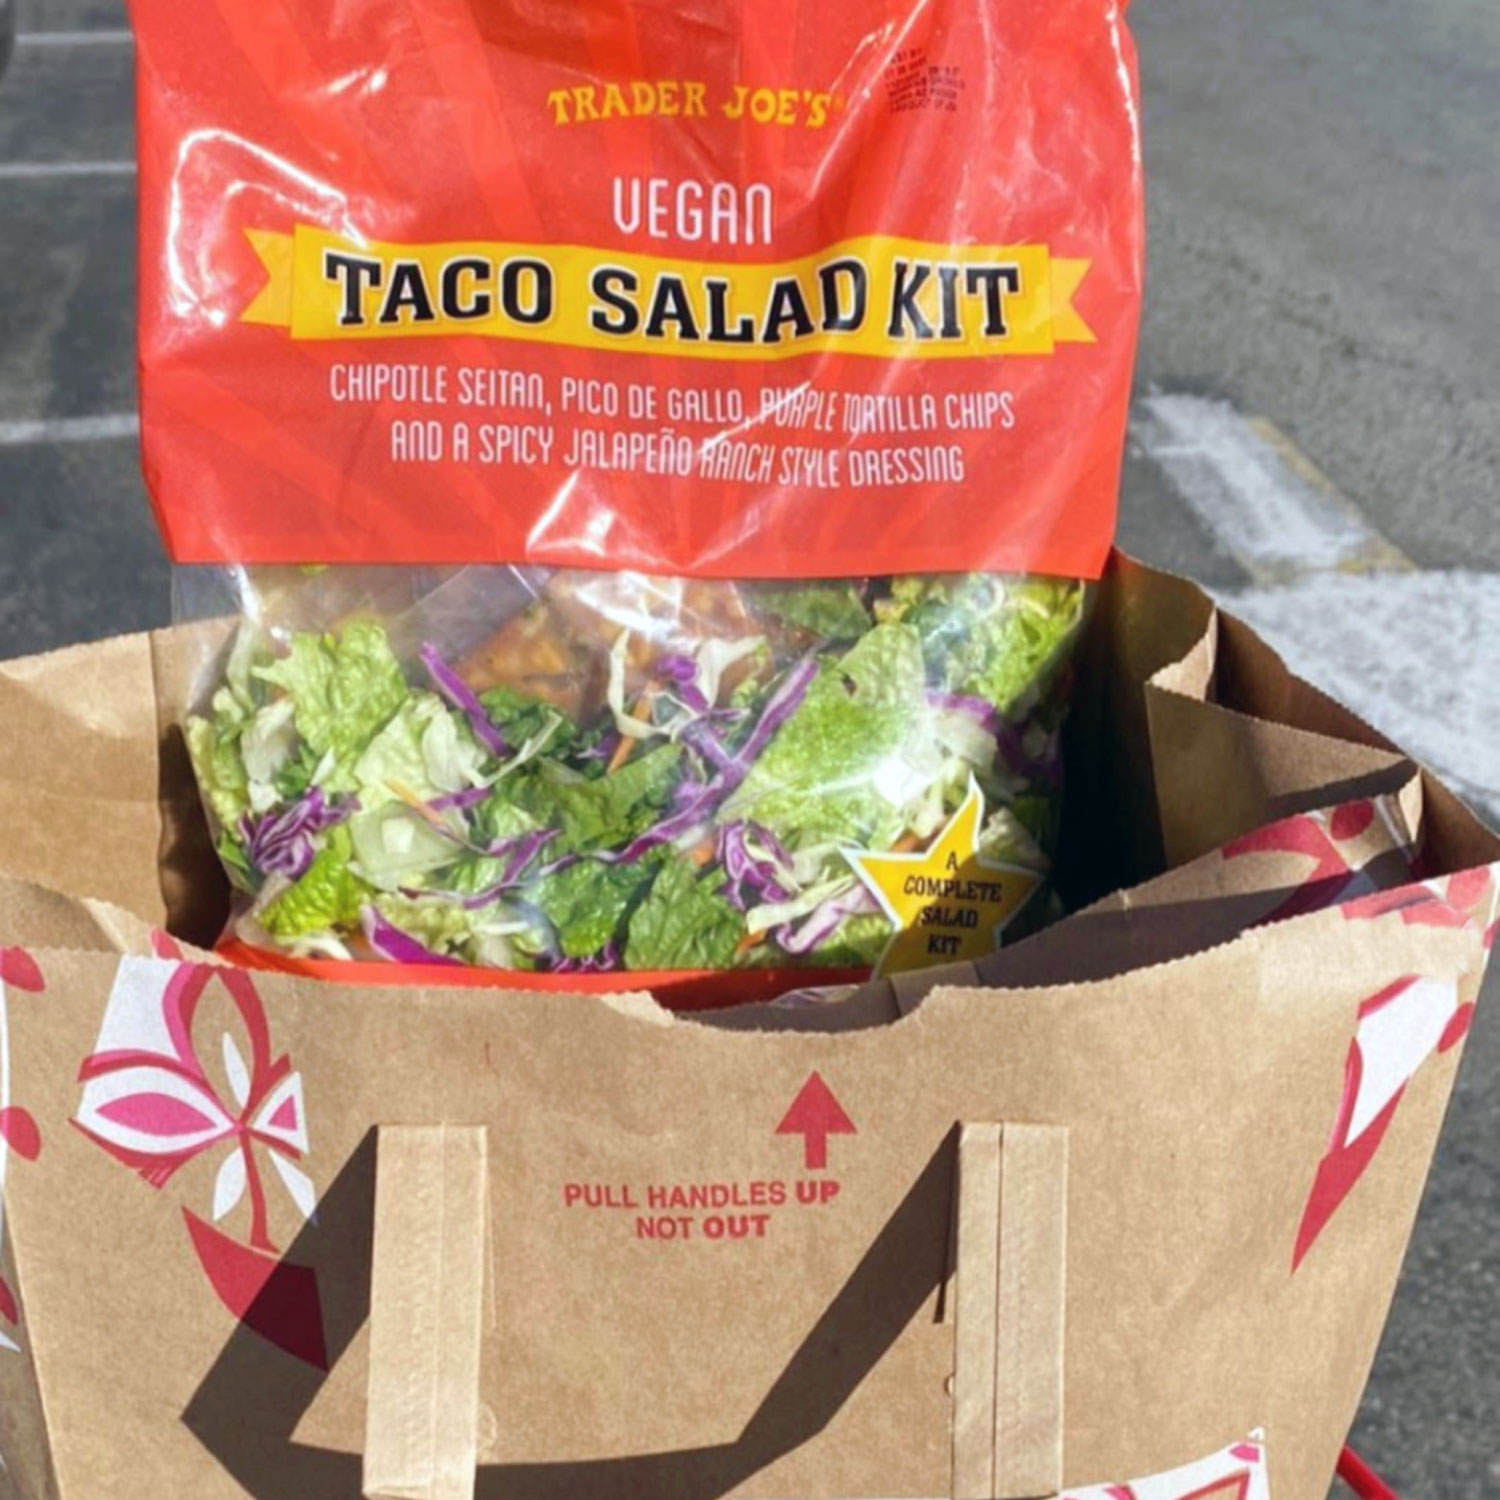 trader joe's vegan taco salad kit